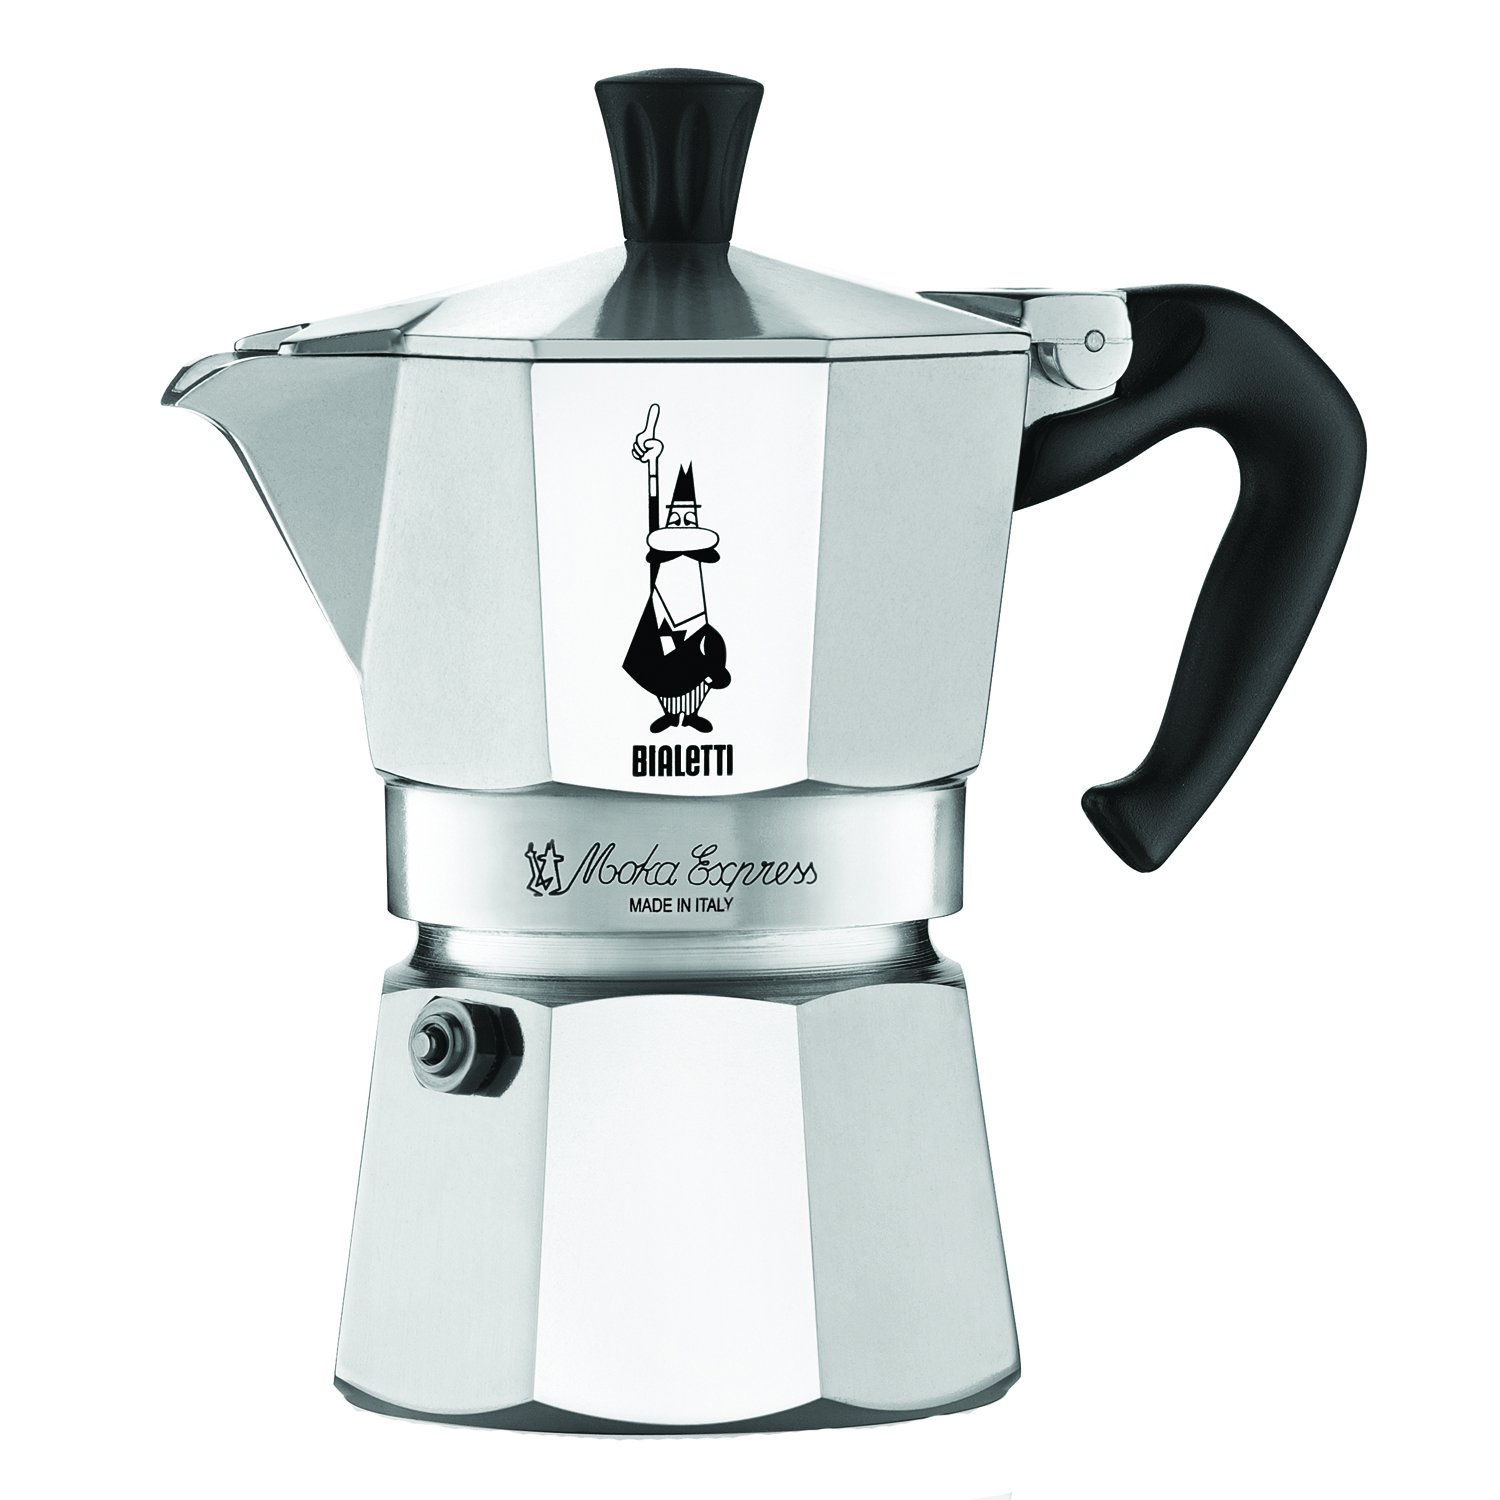 The Original Bialetti Moka Express Made in Italy 3-Cup Stovetop Espresso Maker with Patented Valve (06799)